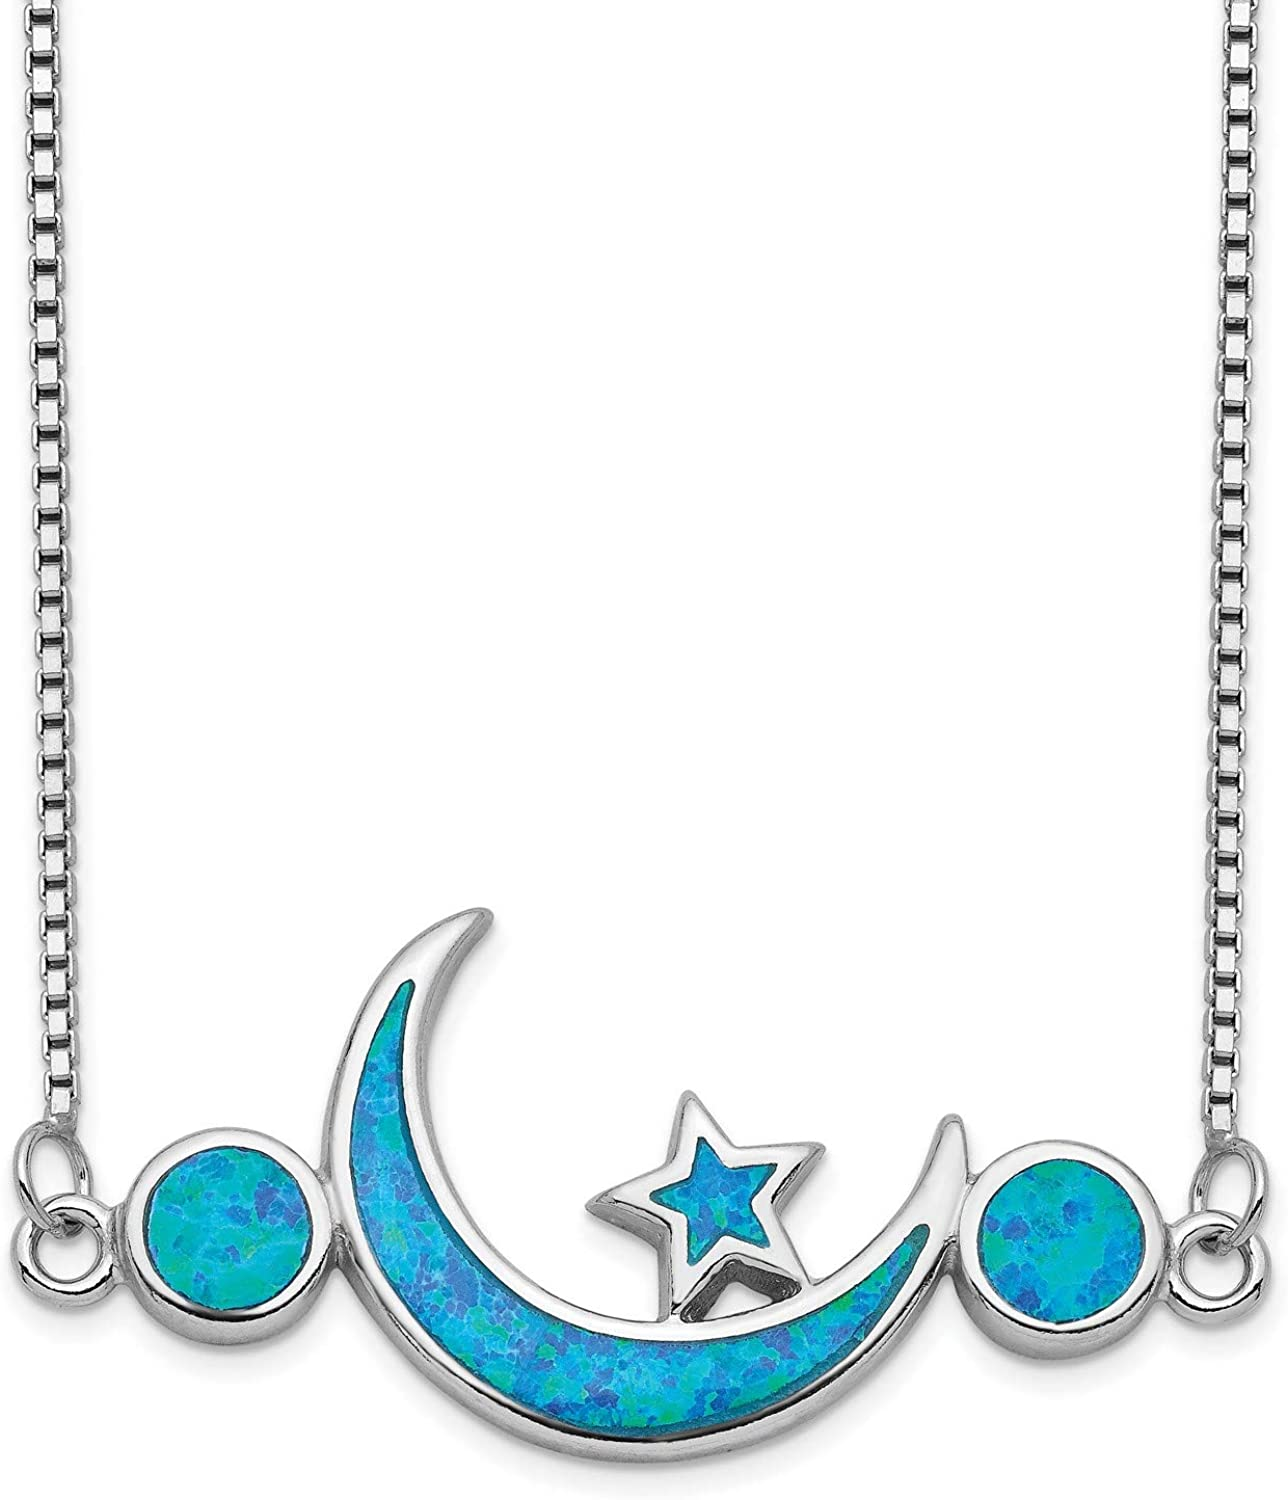 Imitation Opal Half Moon And Stars 925 Necklace Pendant Max 90% OFF Bargain With In